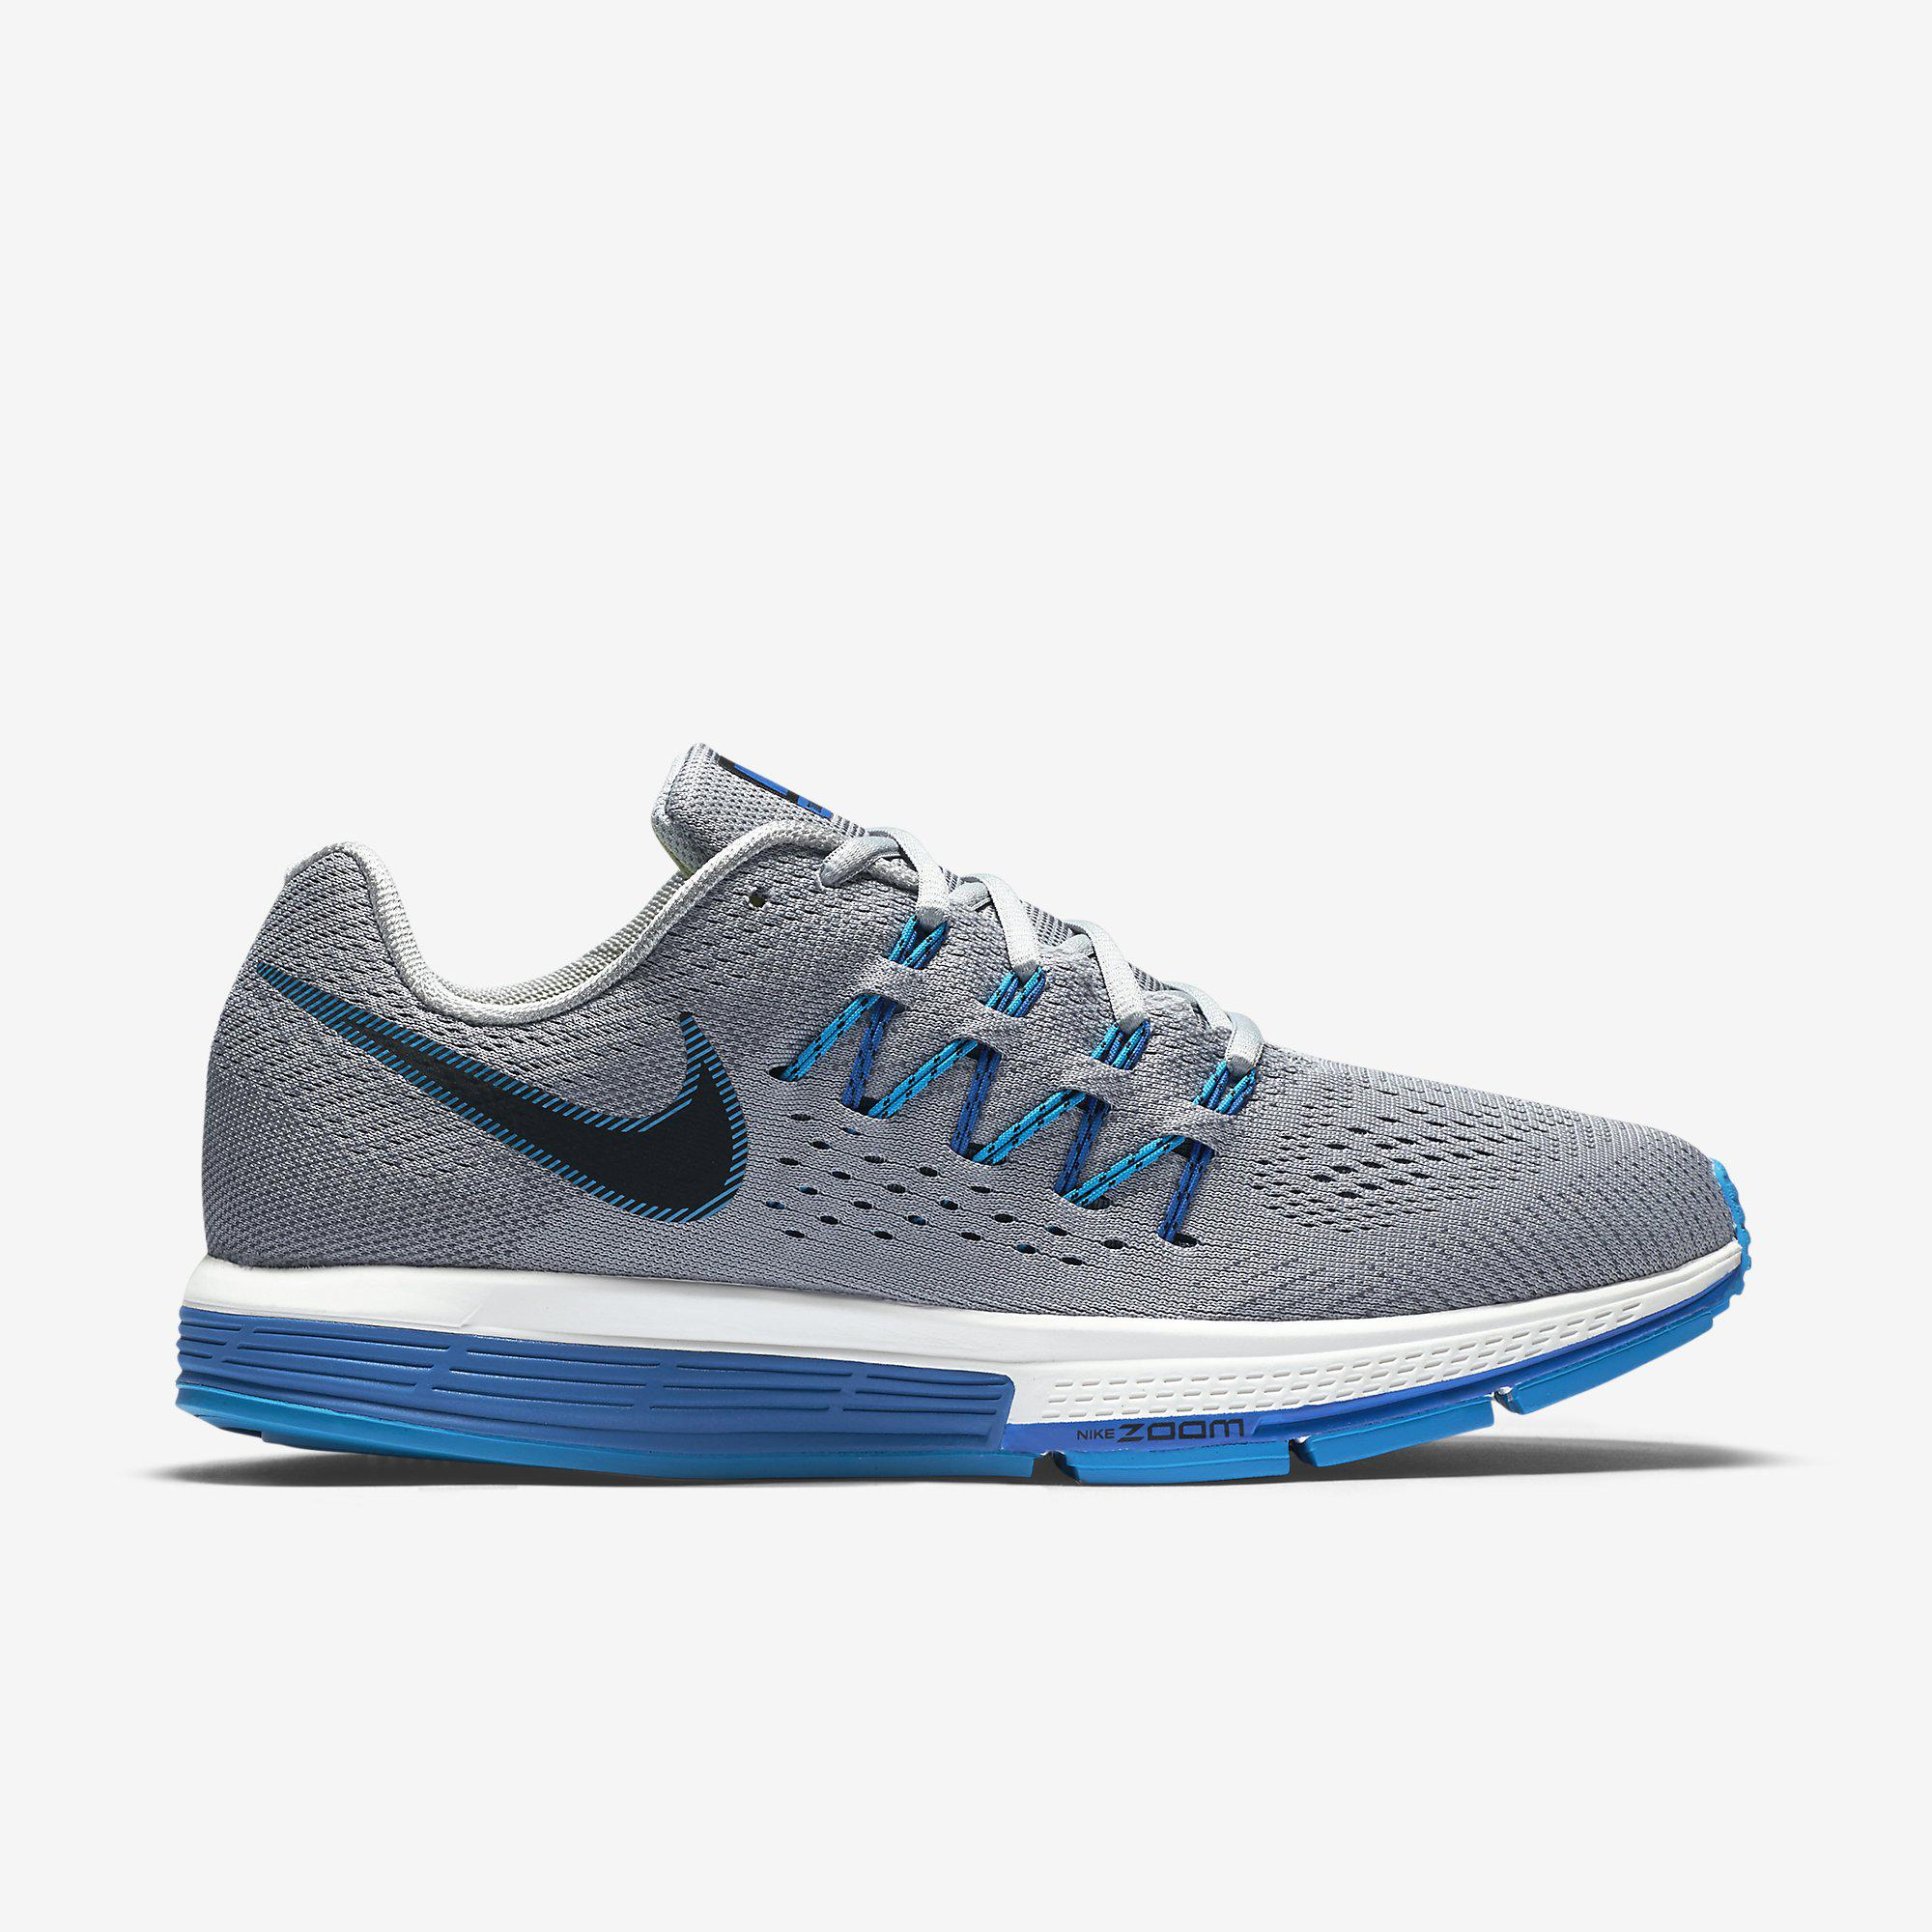 Nike Mens Air Zoom Vomero 10 Running Shoes - Wolf Grey